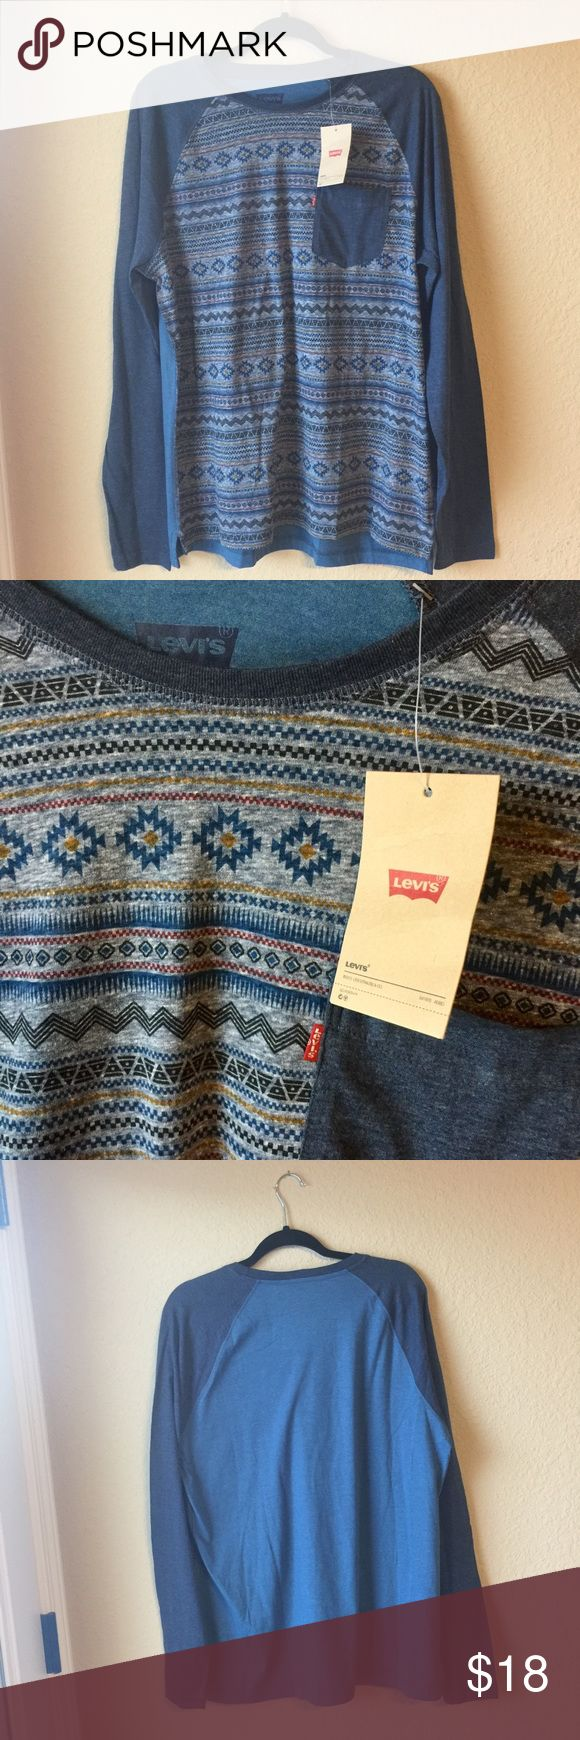 Levi's Crew Neck T-Shirt Levi's Long Sleeve Crew Neck Tee. Size Large. New with tags. Shades of denim blue, with Aztec print on front. Offers welcome! 🙂  Long sleeve  Crew Neck Chest pocket 60% Cotton, 40% Polyester Raglan Sleeve Levi's Shirts Tees - Long Sleeve